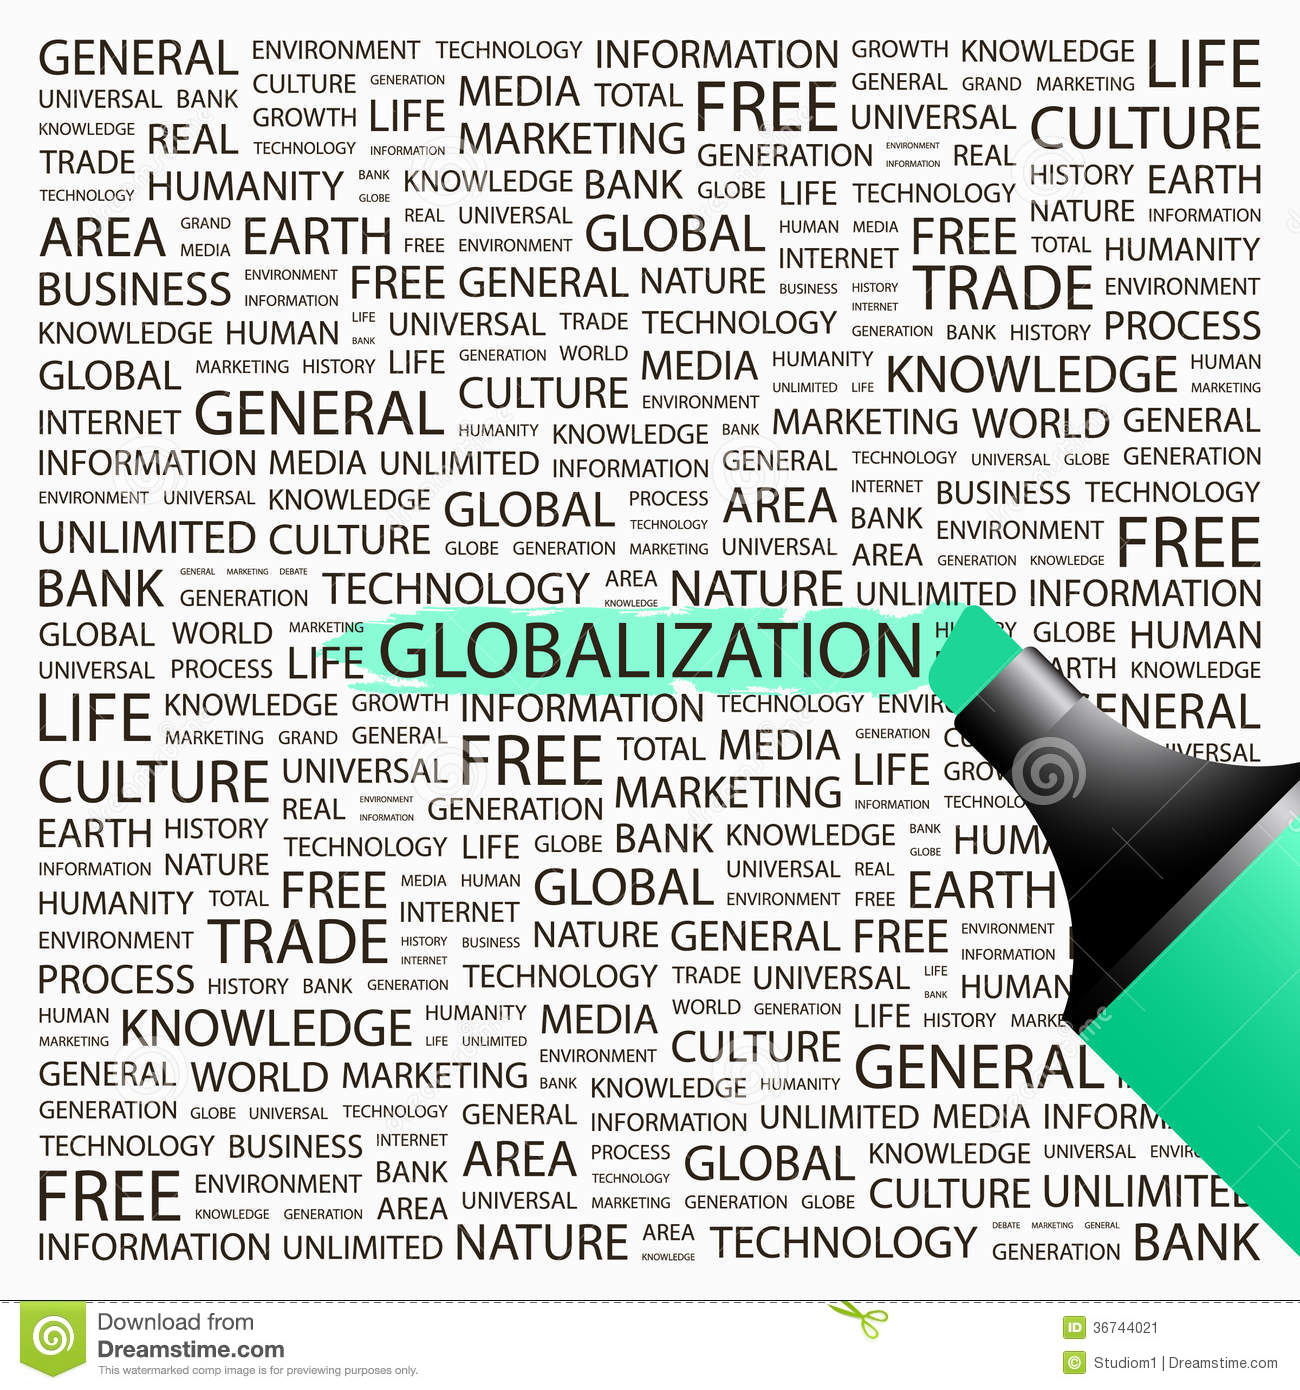 concept of global capitalism and how it affects the state The state interventions in the economy of that time, including the institution of a minimum wage, the cap of a 40 hour work week, and support for labor unionization, also laid pieces of the foundation of global capitalism.